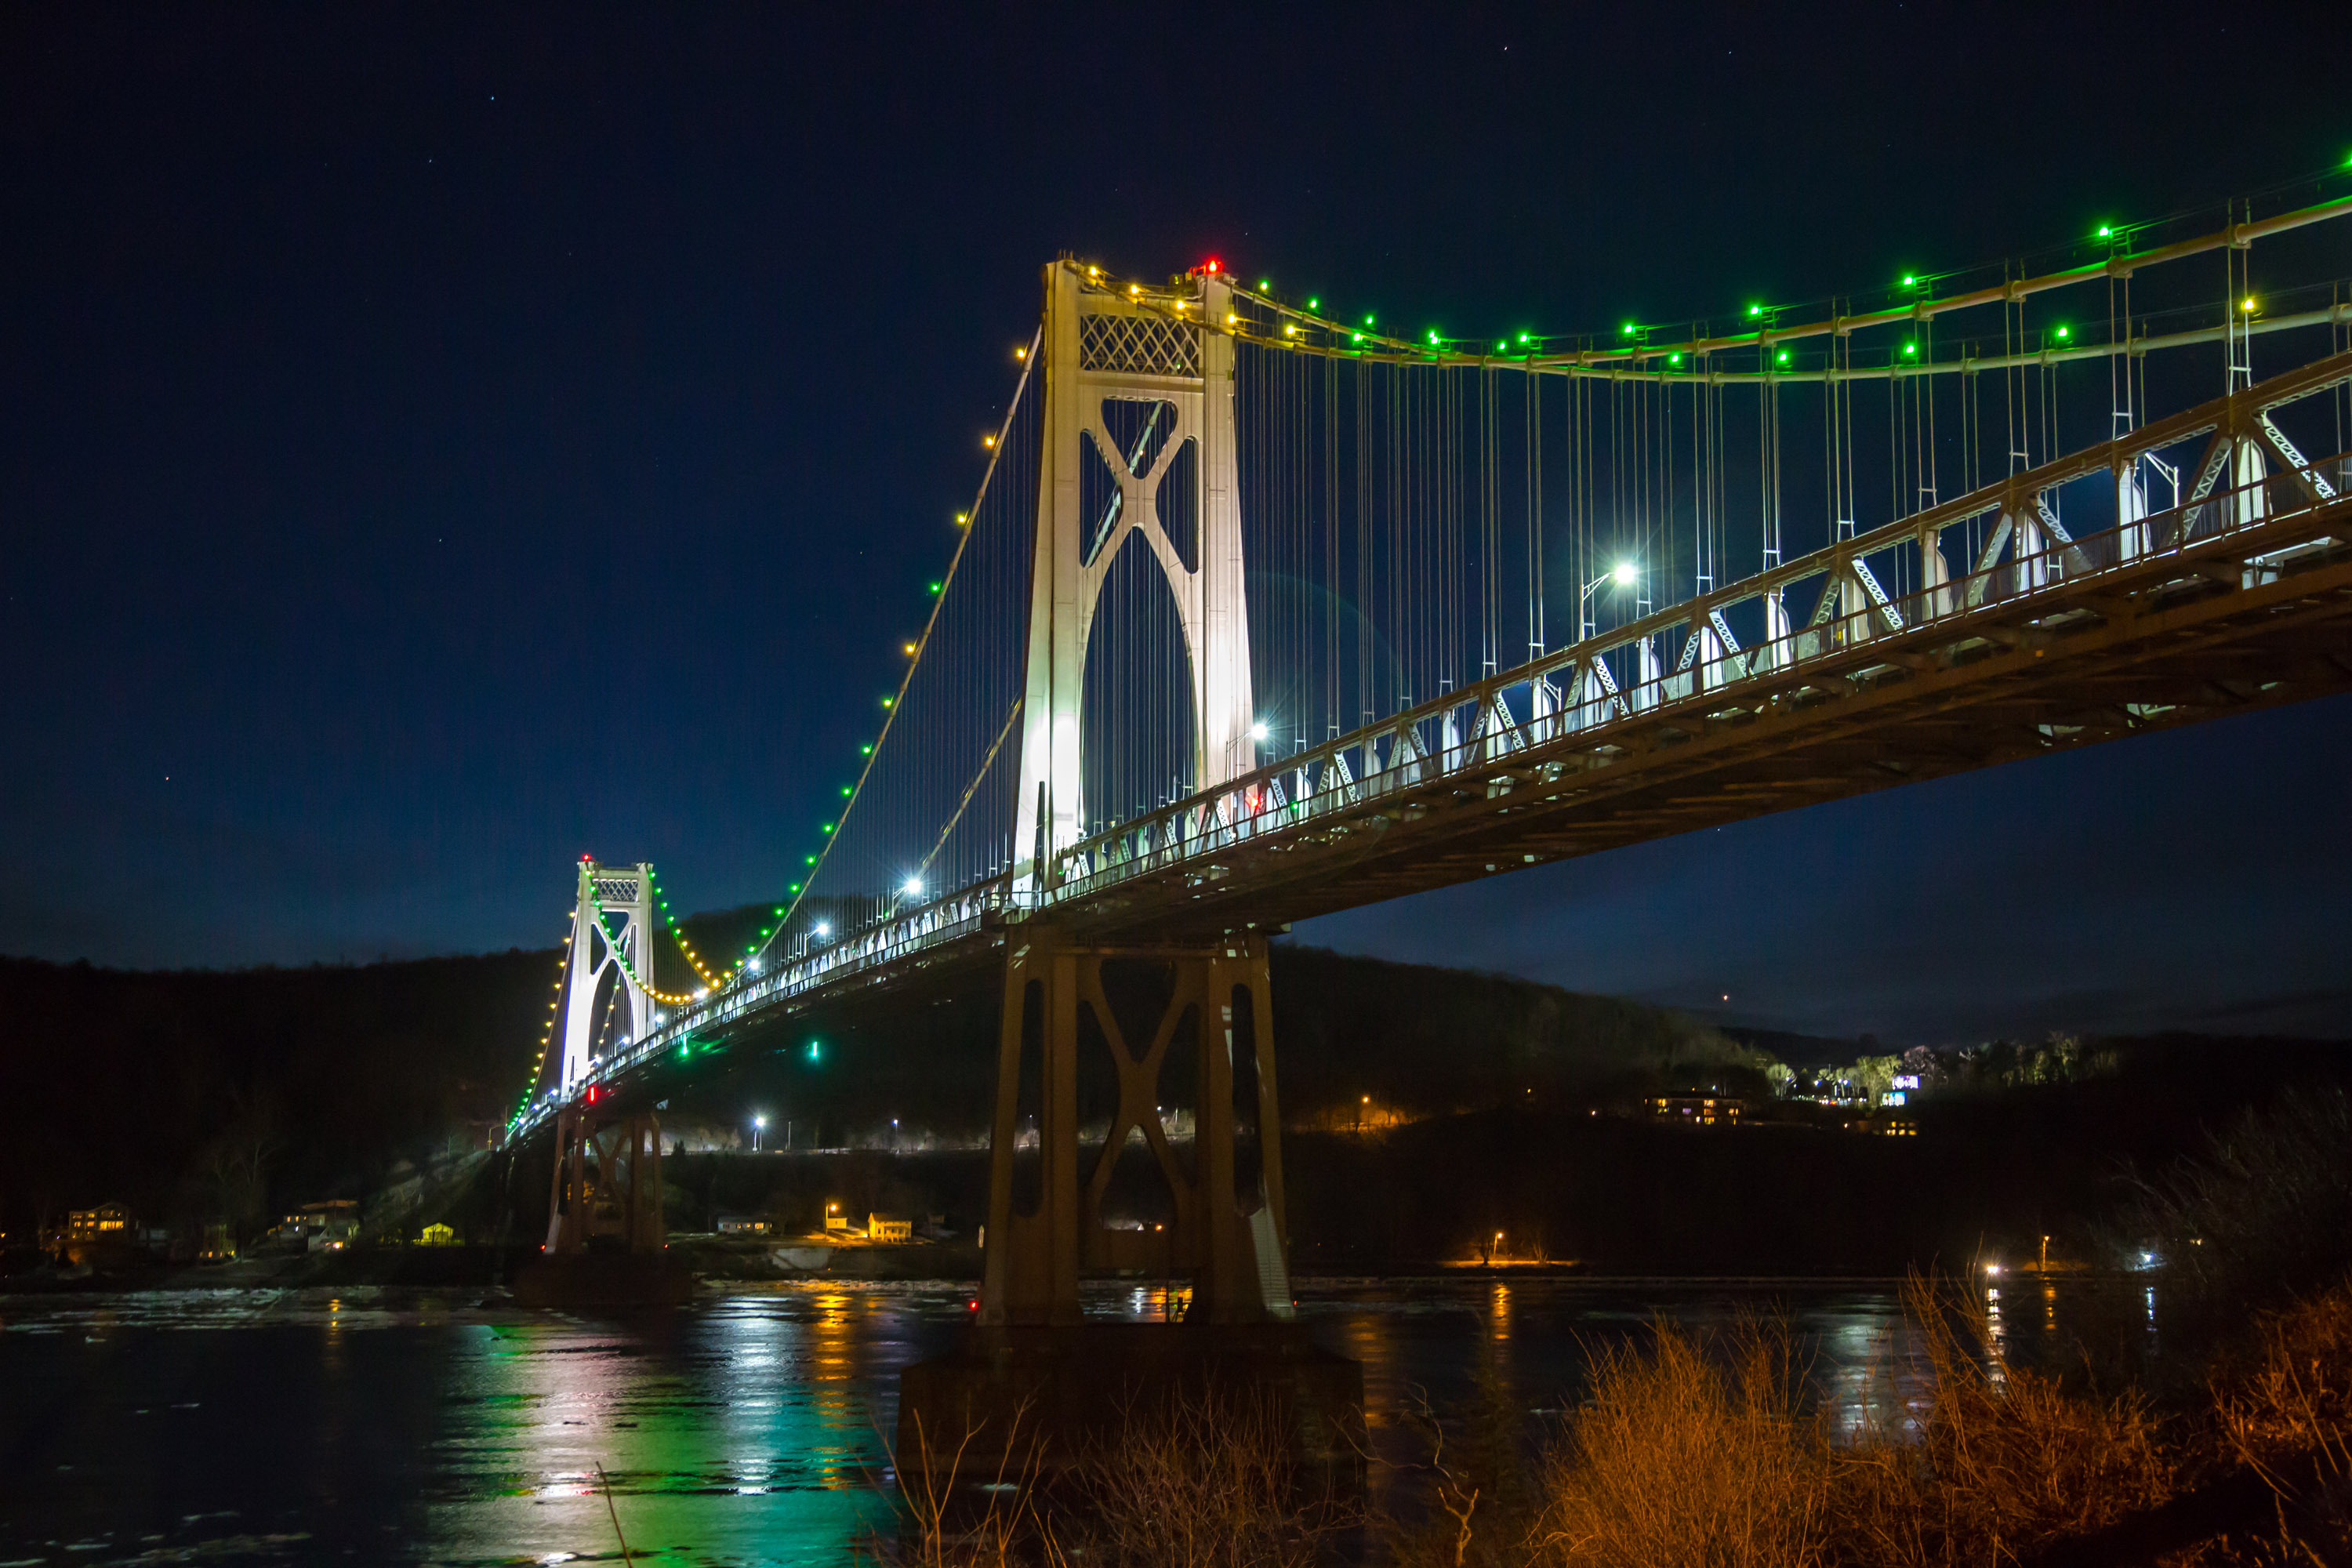 The Mid-Hudson Bridge spans the Hudson River to Poughkeepsie, New York, where IBM has just opened the IBM Quantum Computation Center.